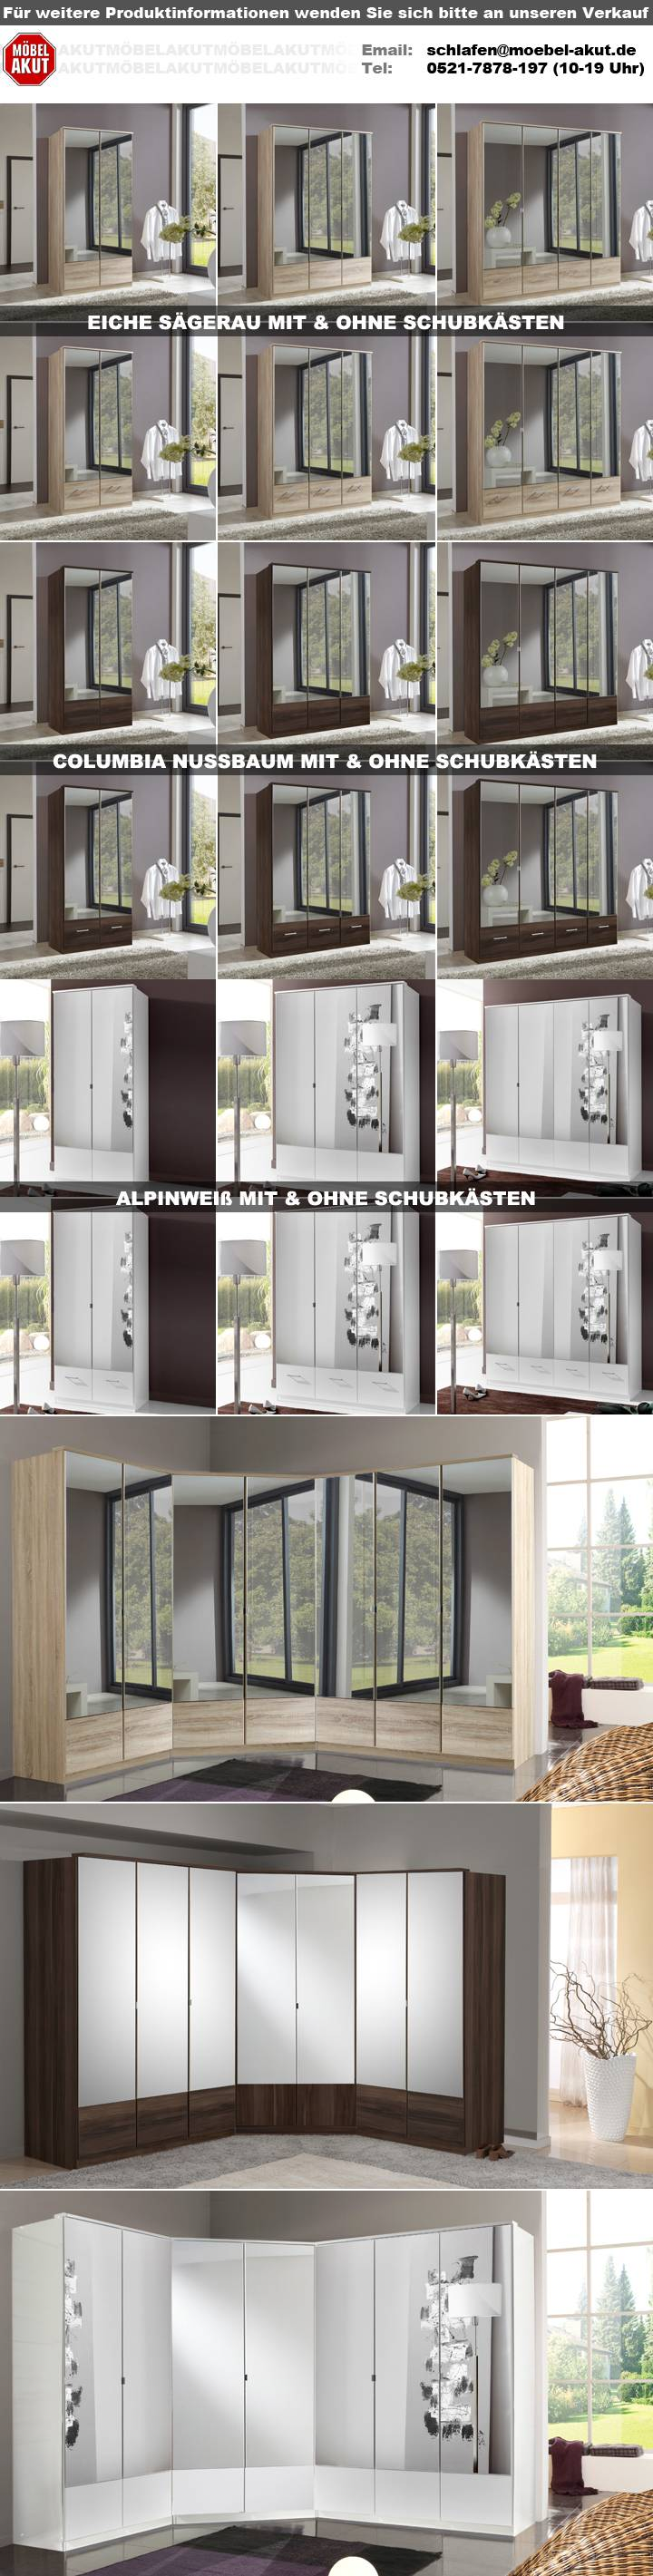 kleiderschrank imago schrank schlafzimmerschrank in wei. Black Bedroom Furniture Sets. Home Design Ideas